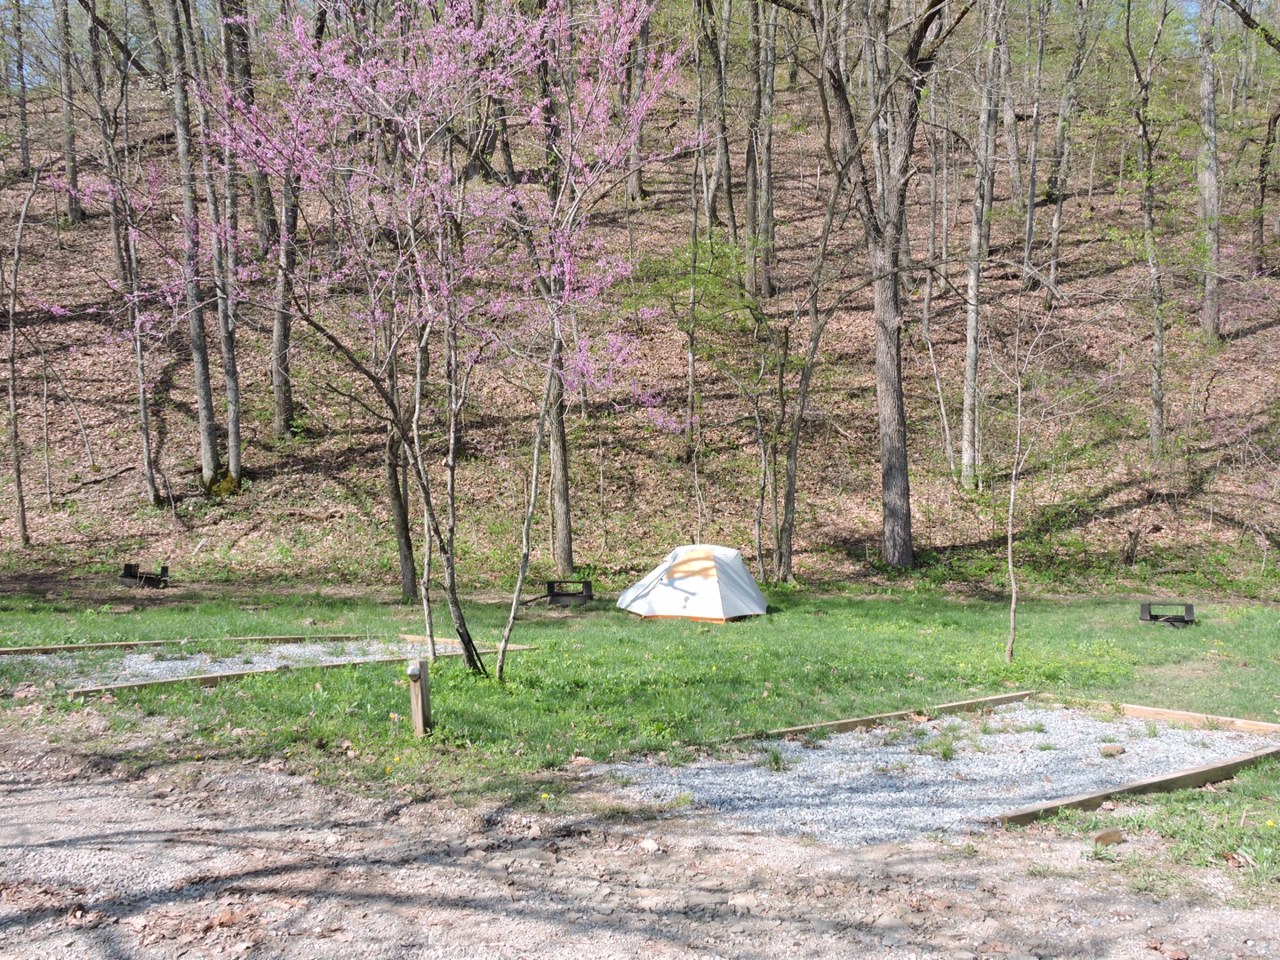 Each of these four sites are conveniently located in our main Base Camp area and equipped with a space for one vehicle and fire ring. Closest access tobathhouse, water pump, and the free Base Camp activities. Nightly Fee: $10 plus $10 per person.